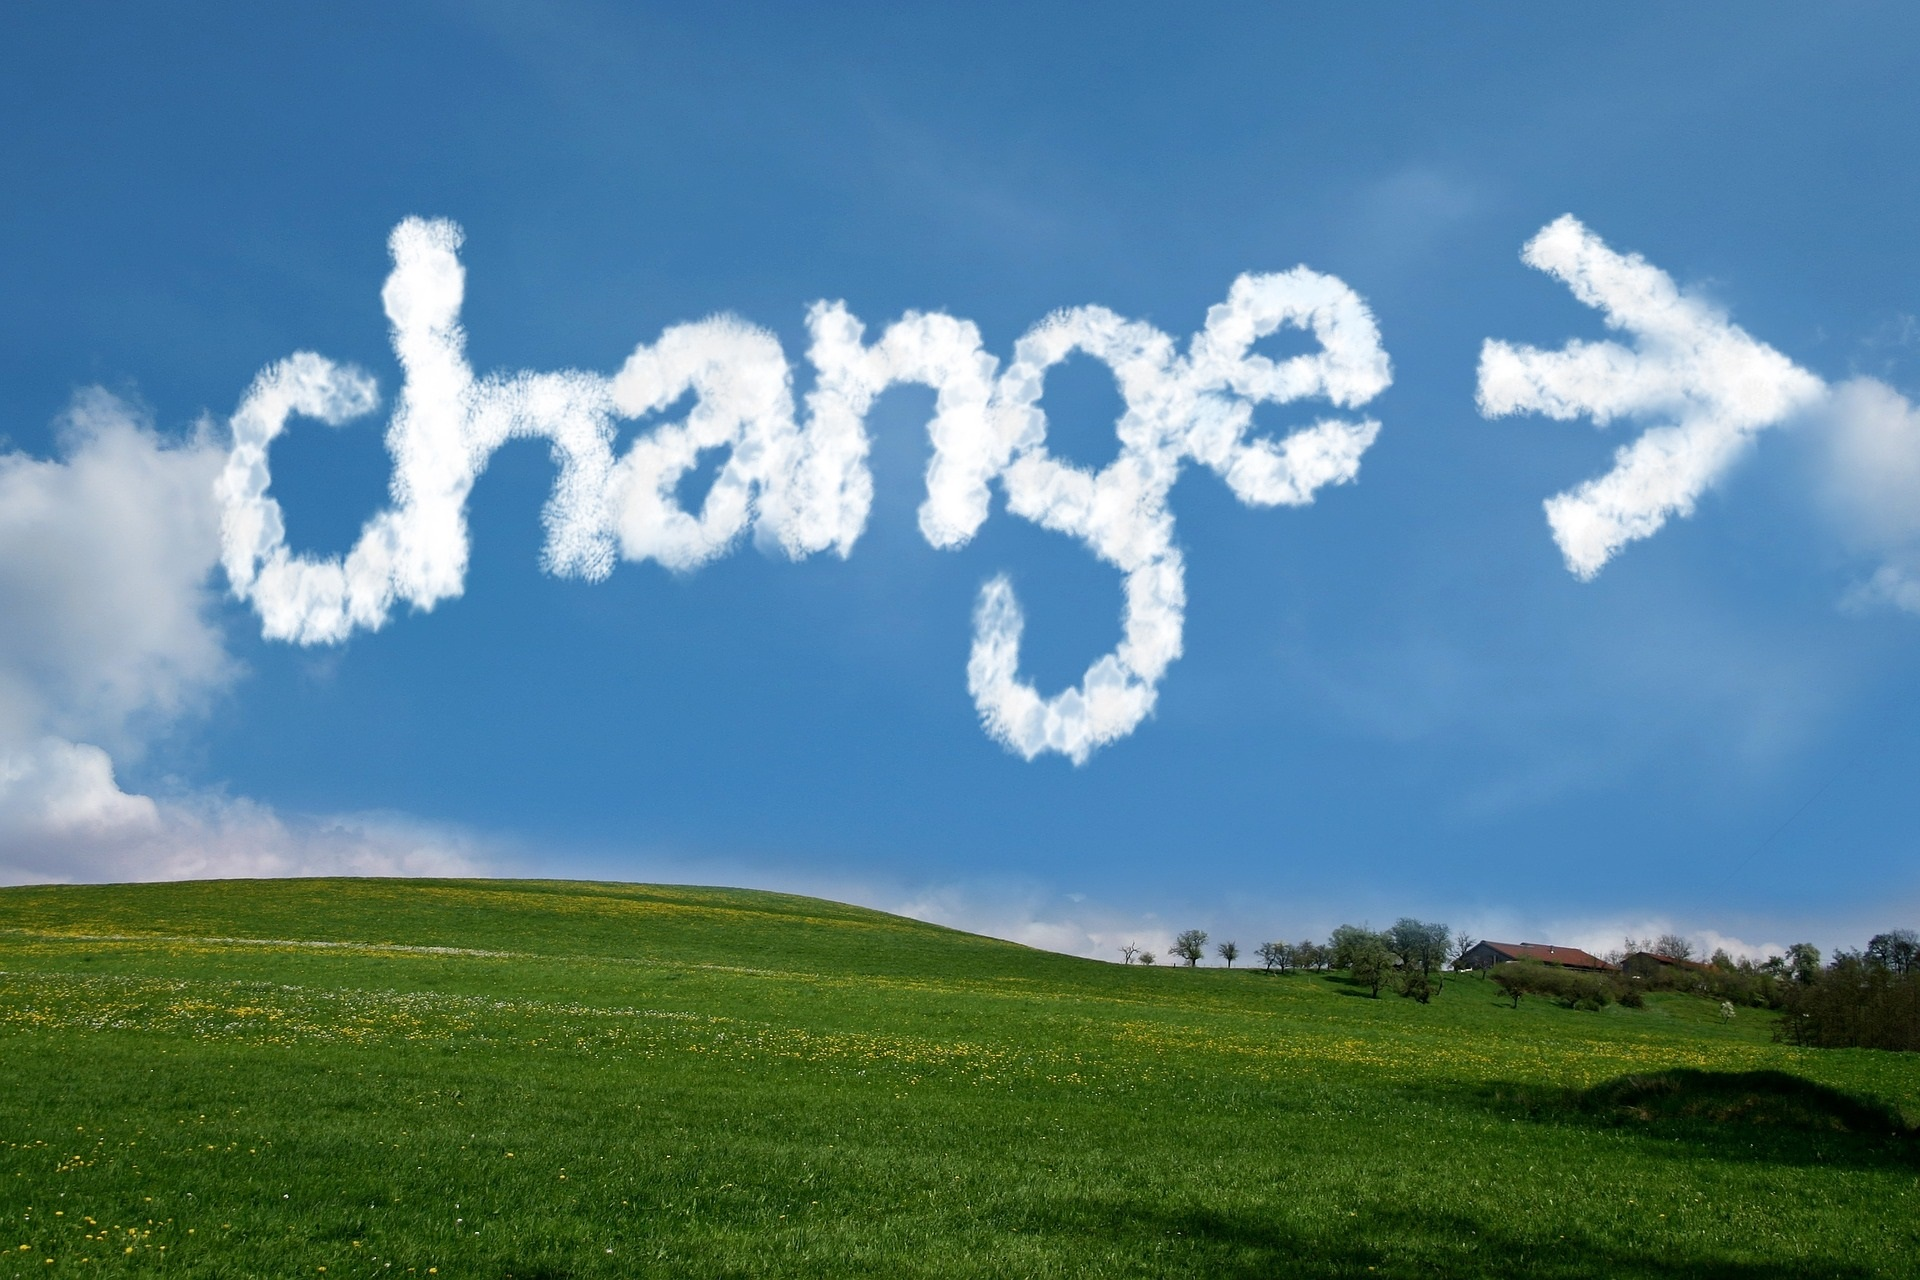 The Change Maker; by shifting Mindsets and Lifestyle